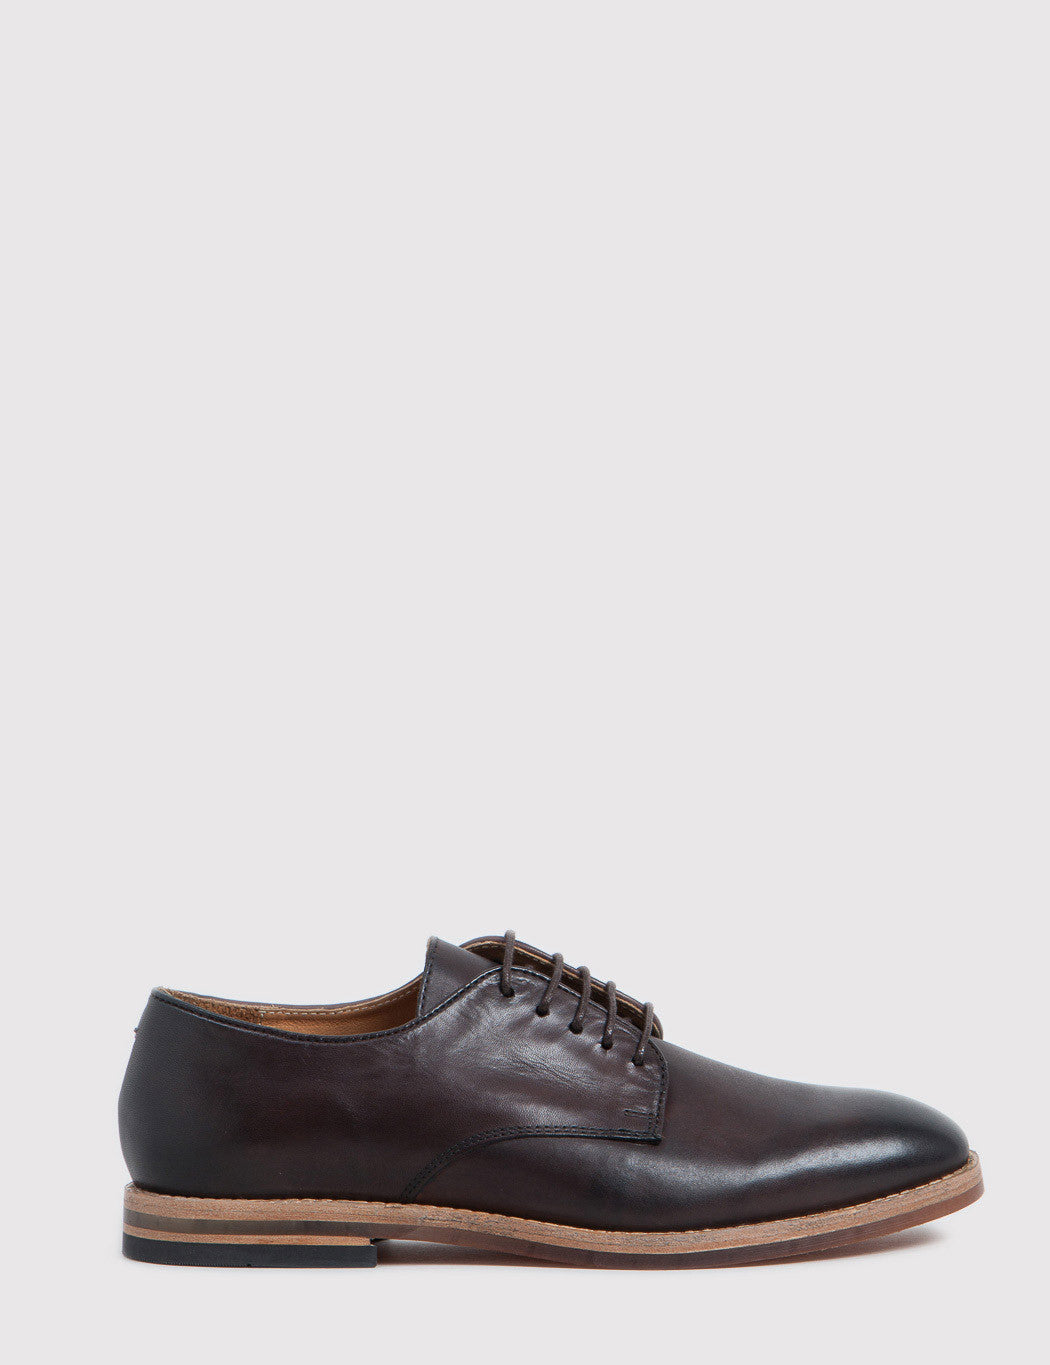 Hudson Hadstone Calf Leather Shoes - Brown ... 7a8aa80e8